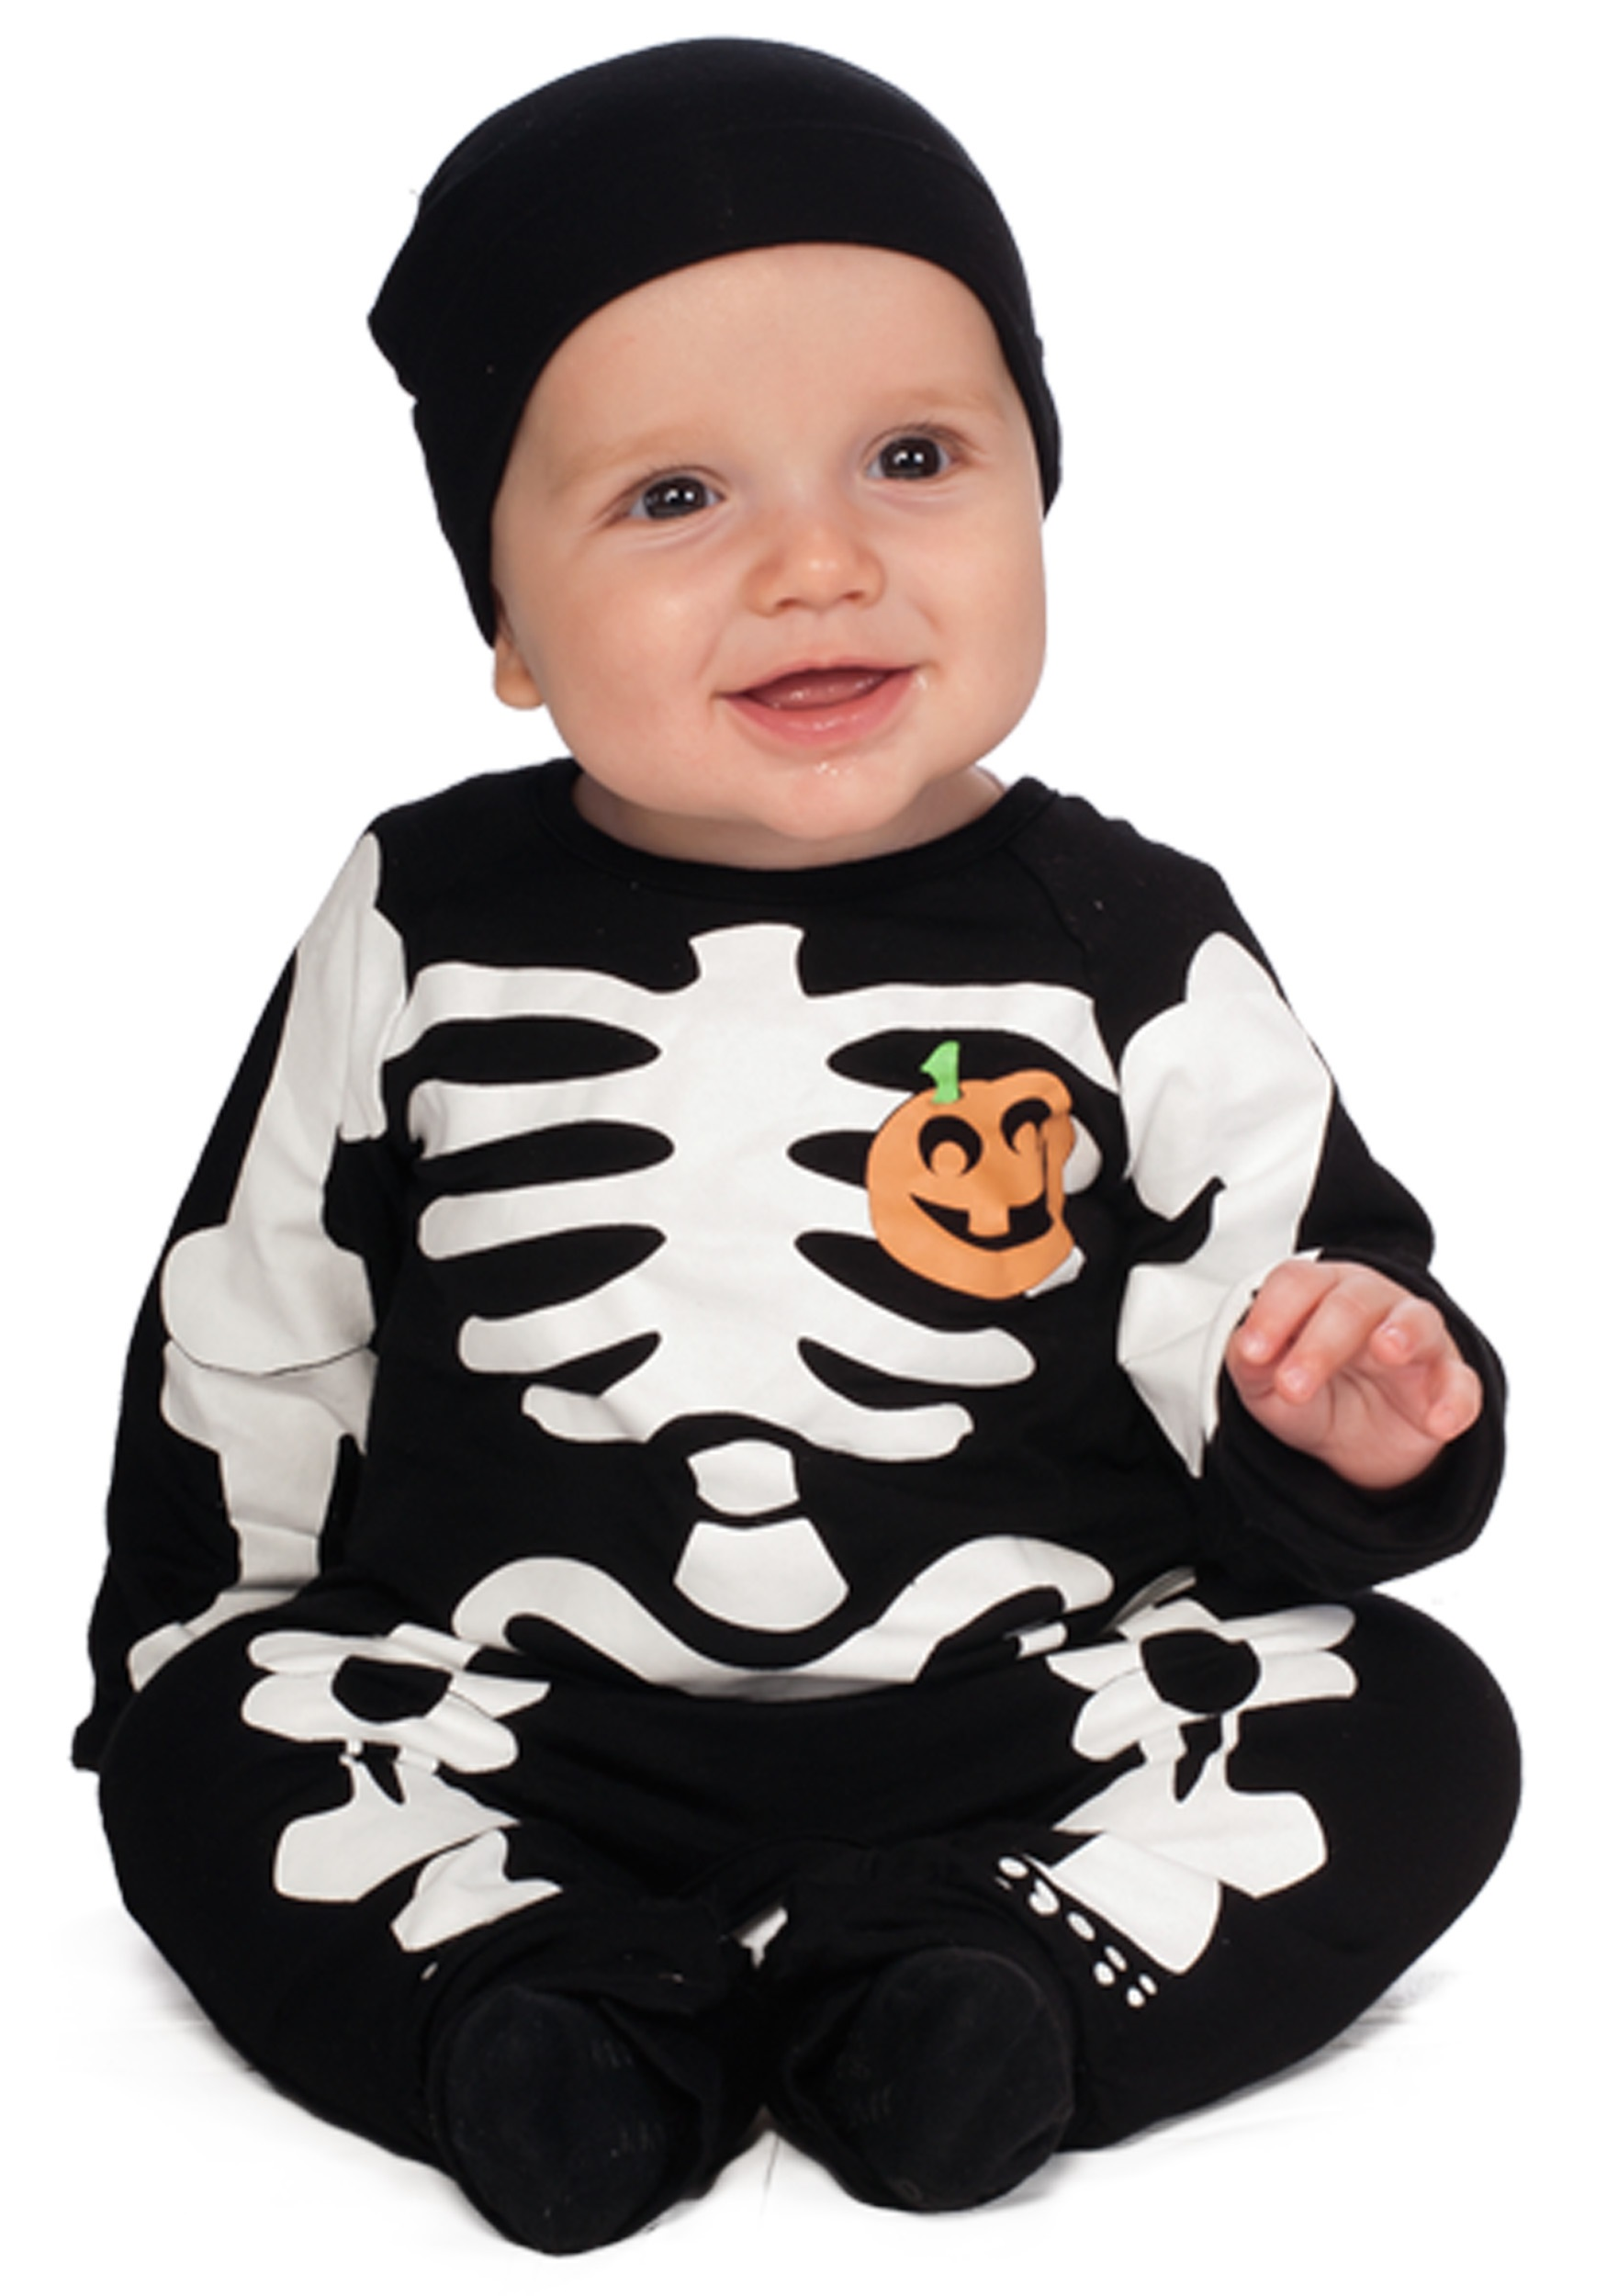 Baby Carter's Skeleton Bodysuit View Larger; Sale $ NEWBORN 3 MONTHS 6 MONTHS 9 MONTHS 12 MONTHS 18 MONTHS 24 MONTHS Size Guide. Quantity + Add to Registry. Add to List. Find in Store. Your little one is cute-to-the-bone in this skeleton bodysuit from .